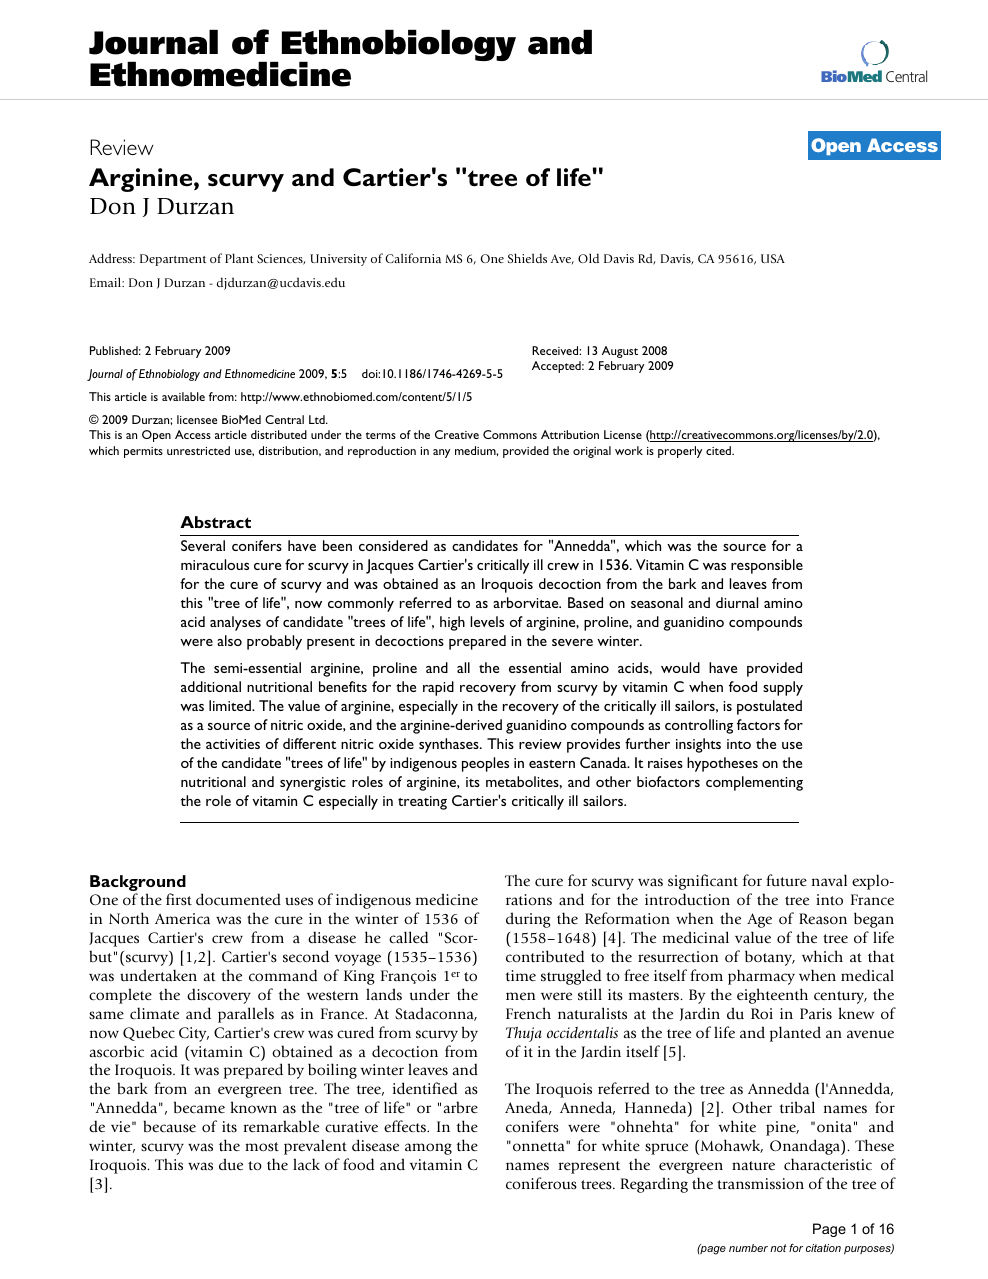 Arginine, scurvy and Cartier's